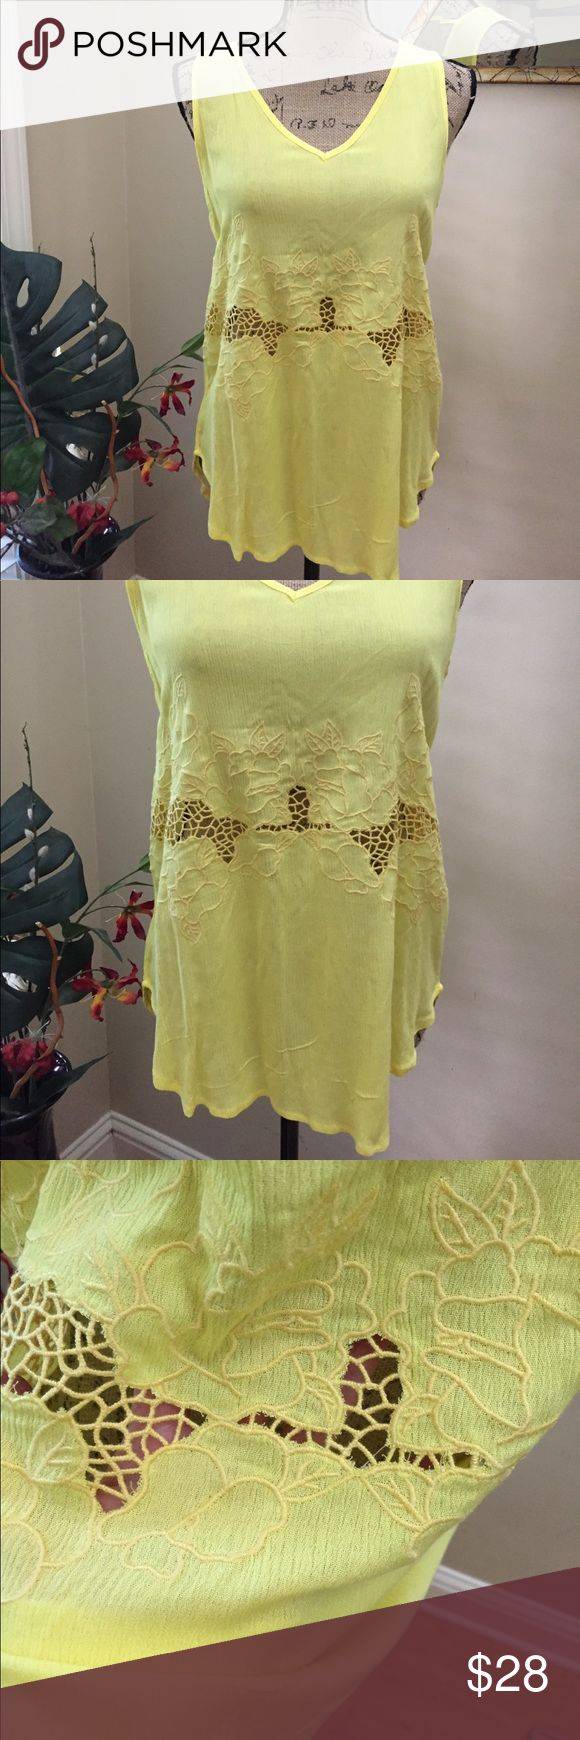 """🌼Boutique hi-lo embroidered cage back tunic! 🌼Boutique NWT yellow embroidered cage back tunic. Bright summery. Happy! It's just stunning. Has a cute cage back with embroidered detail at the midline. NWT. pit to pit measurement is 18"""". Some stretch. Length in front is 25"""". Back is 28"""". boutique Tops Tunics"""